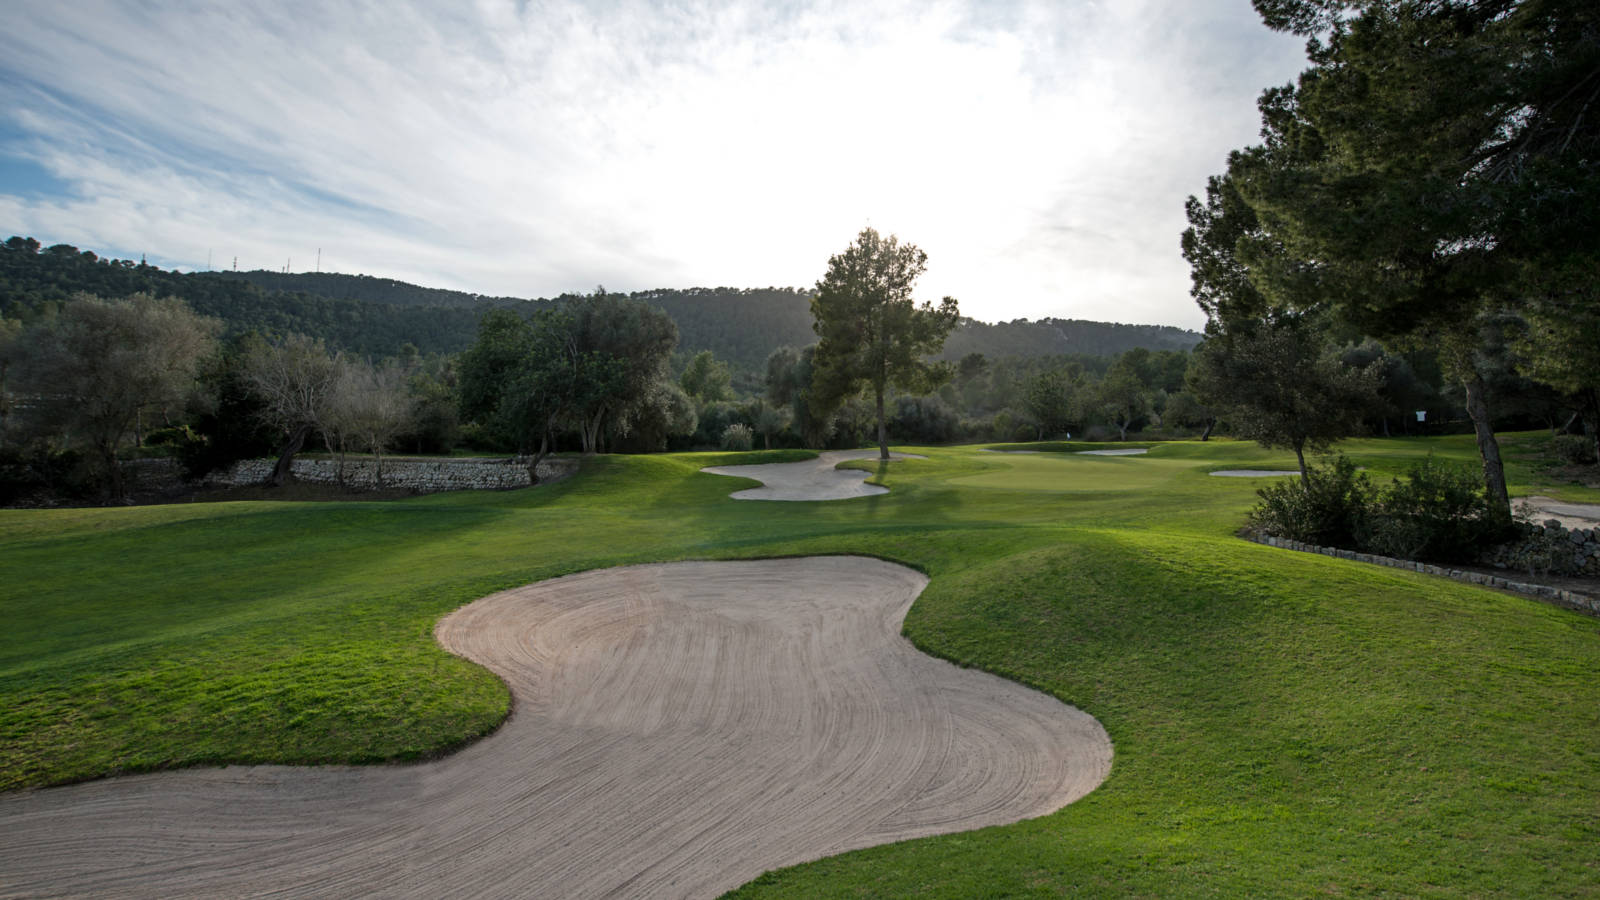 Campo de Golf Son Muntaner en Arabella Golf